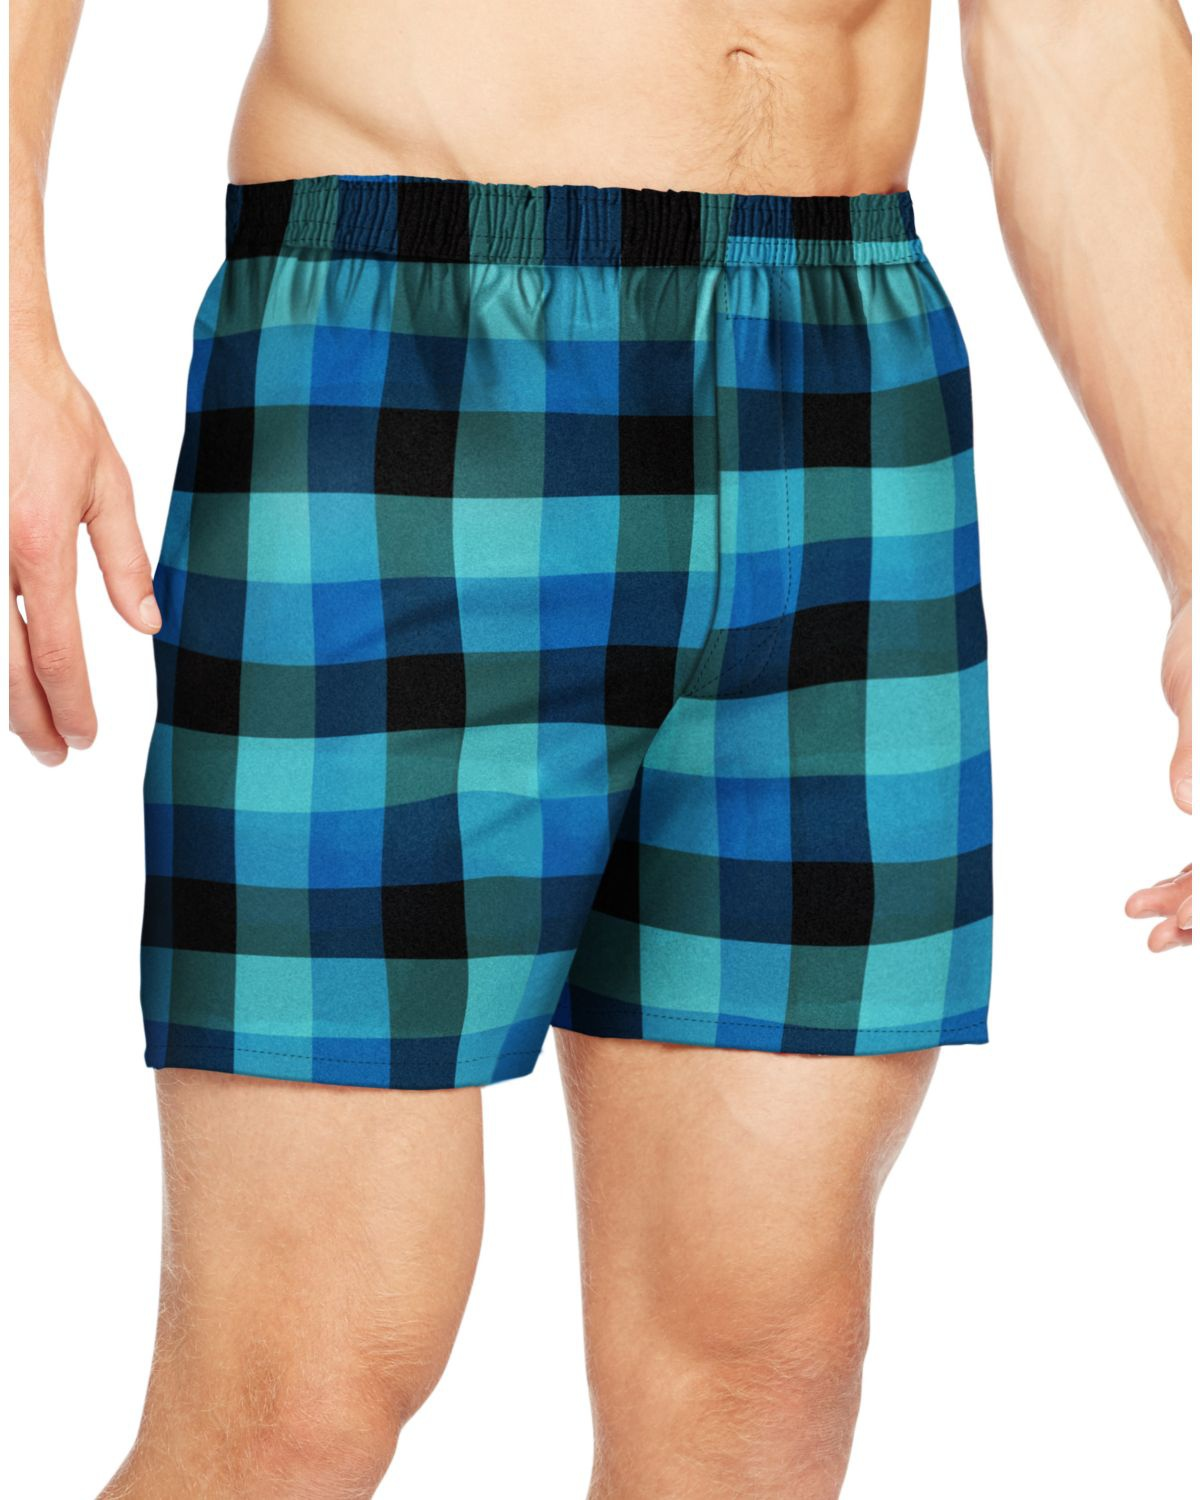 'Hanes UTHXX3 Men's TAGLESS Ultimate Fashion Boxer with Comfort Flex Waistband'